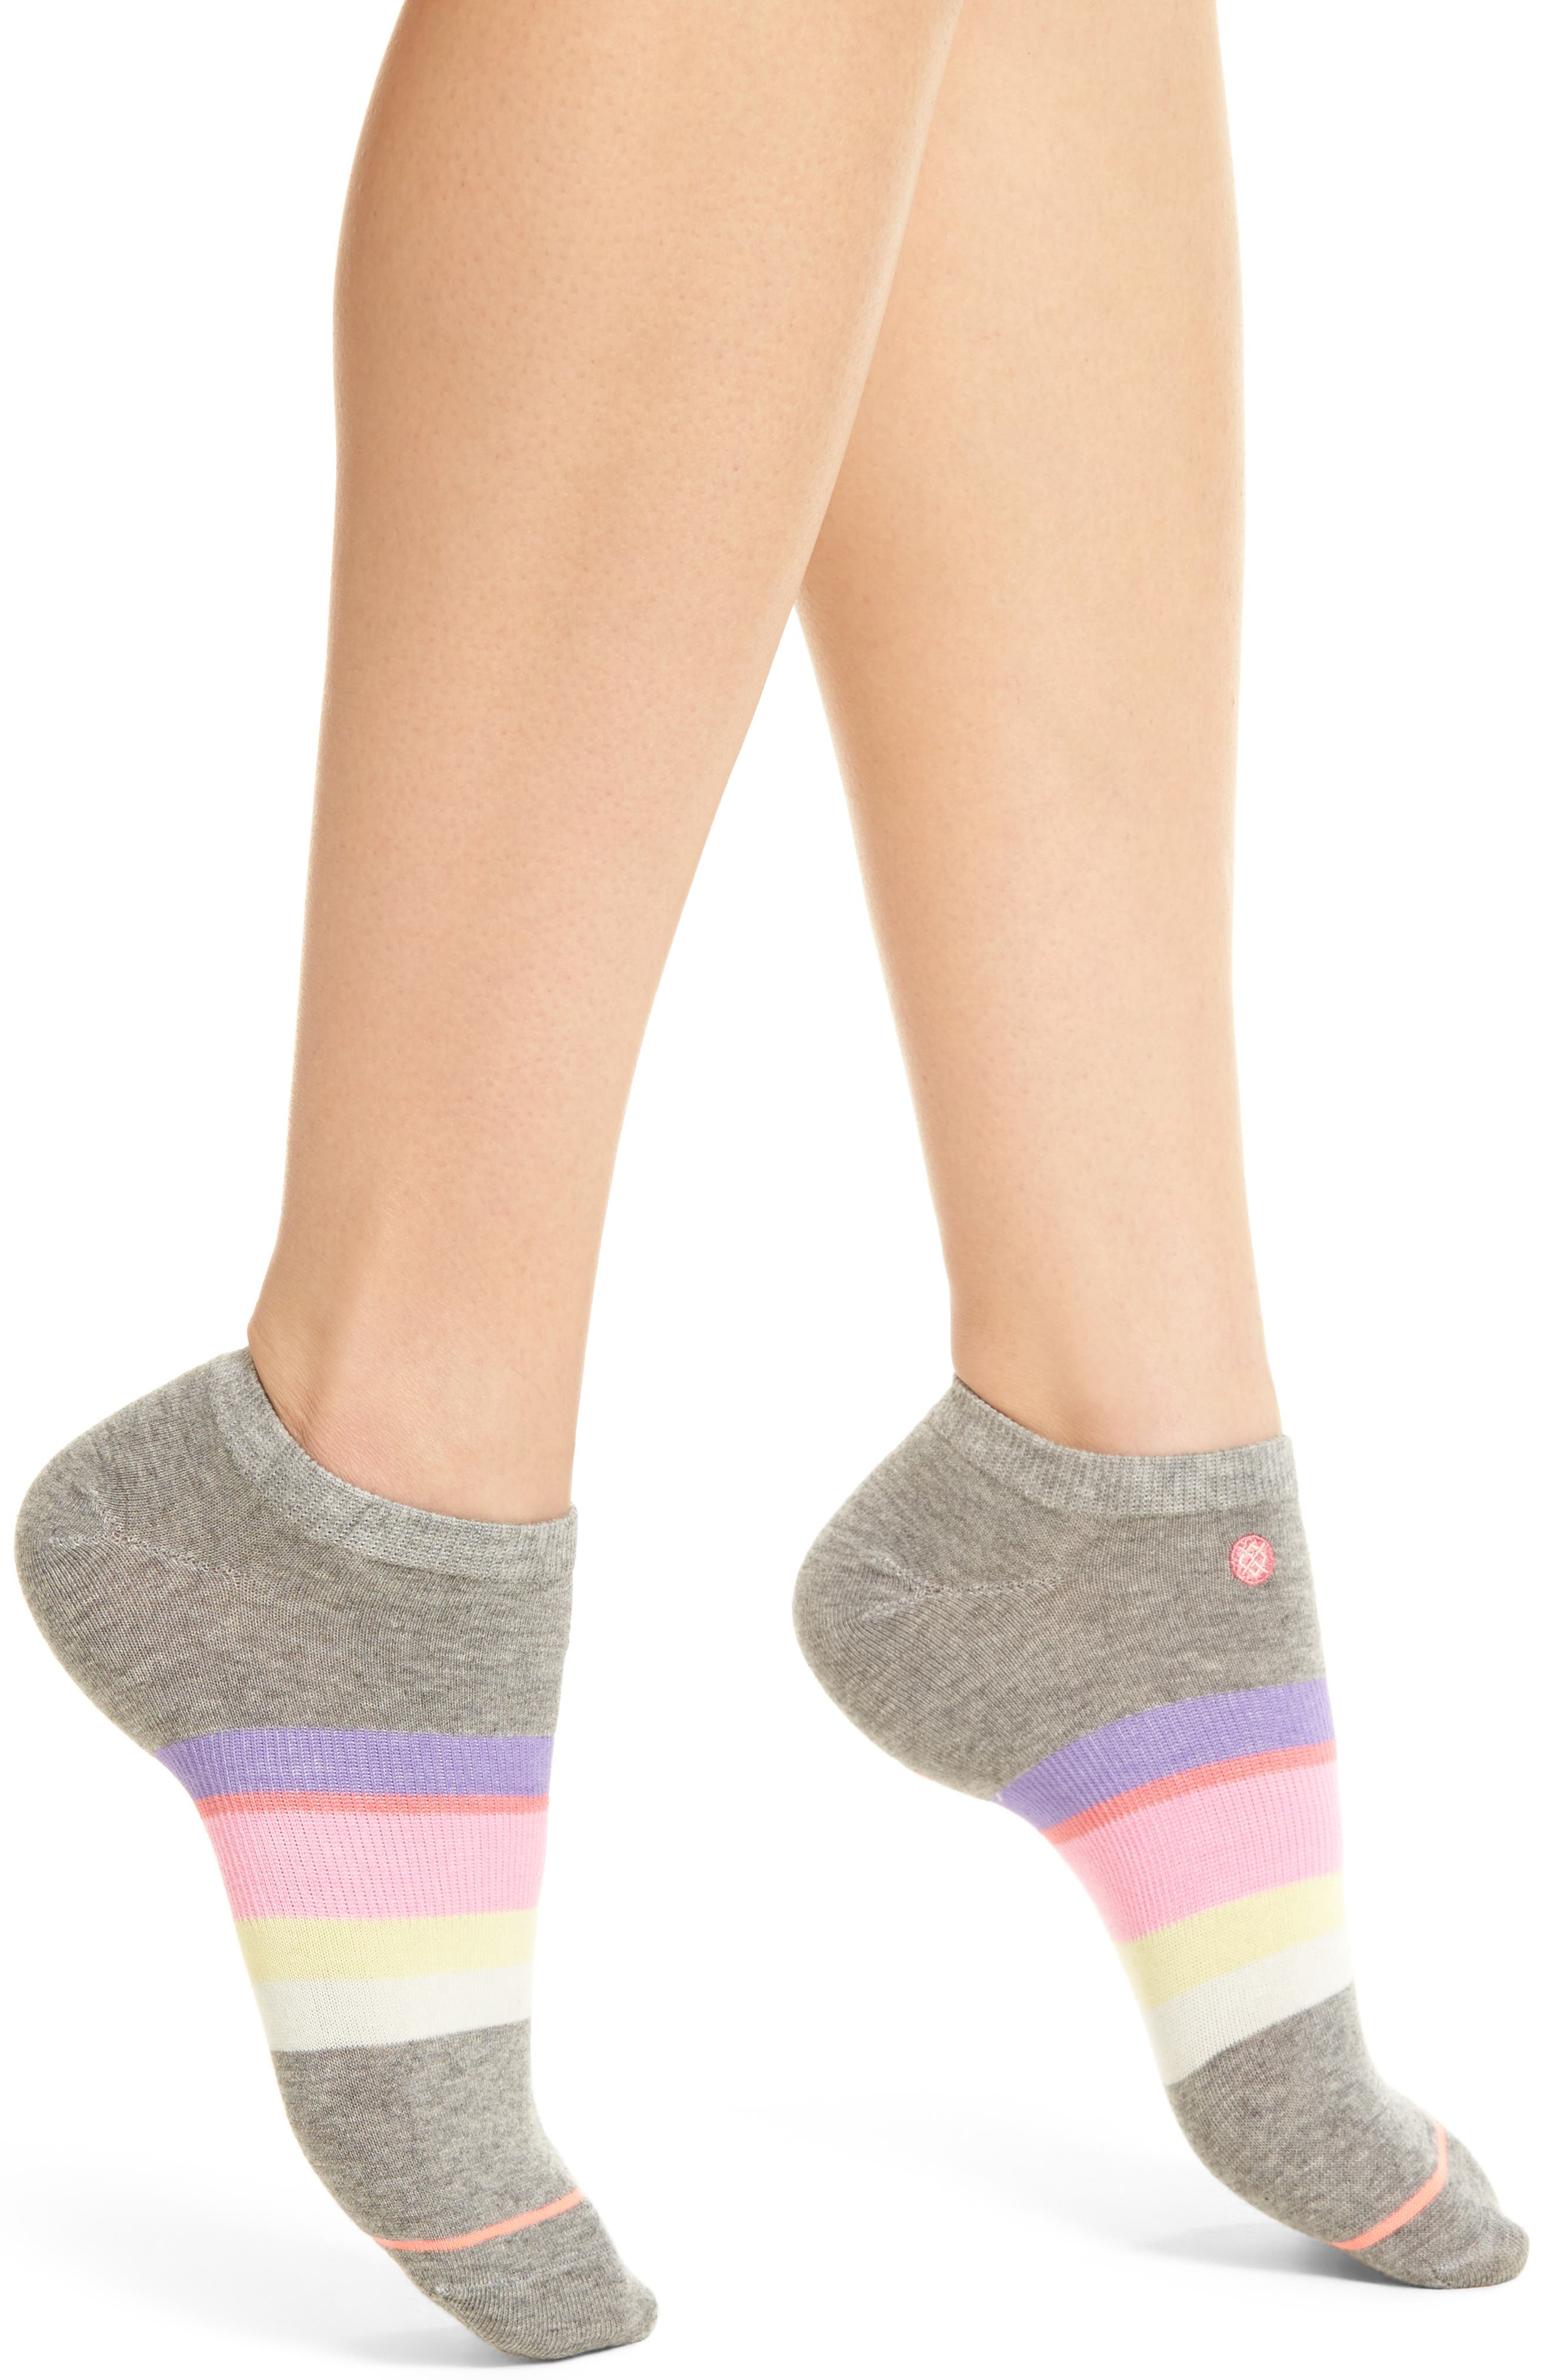 Mega Babe No-Show Socks,                             Main thumbnail 1, color,                             020